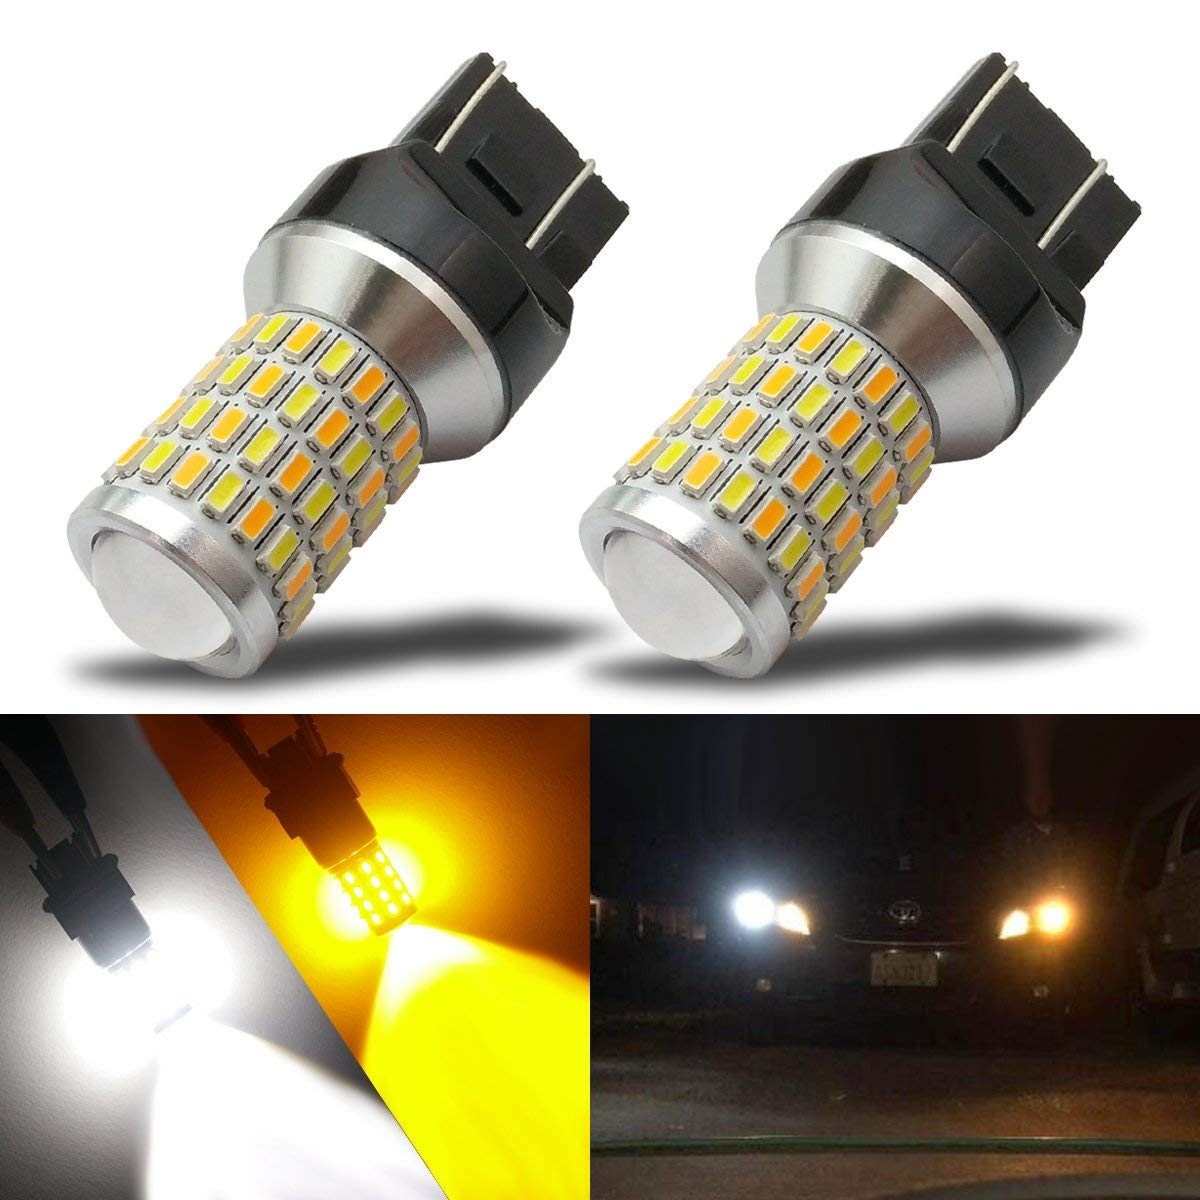 iBrightstar Newest Super Bright 7443 7444NA Switchback LED Bulbs with Projector Replacement for Daytime Running Lights/DRL and Turn Signal Lights, White/Amber